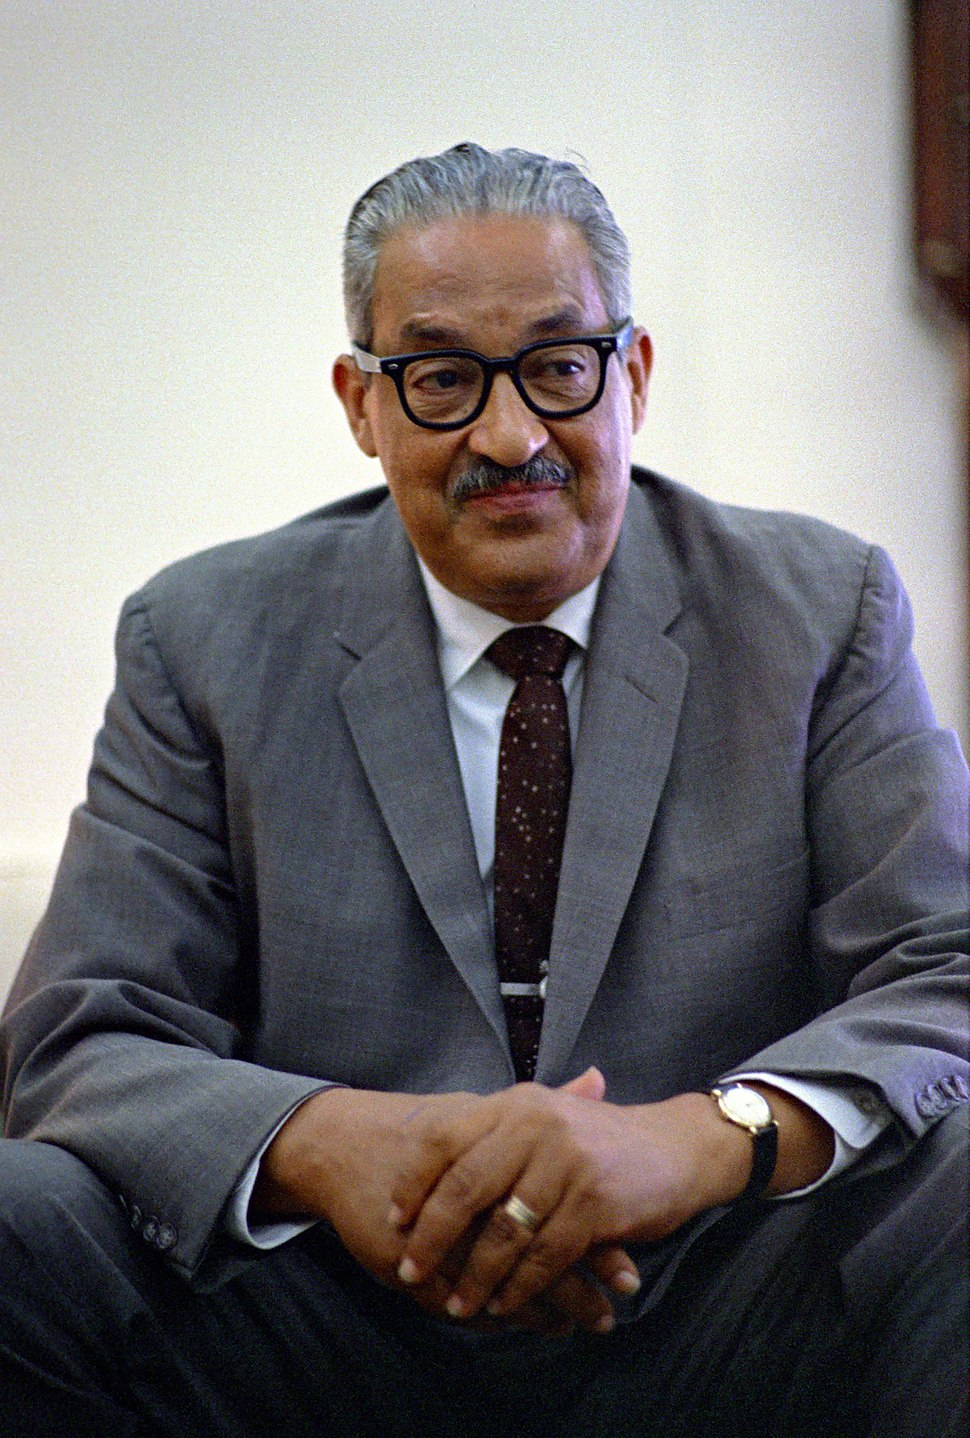 Thurgoodmarshall1967